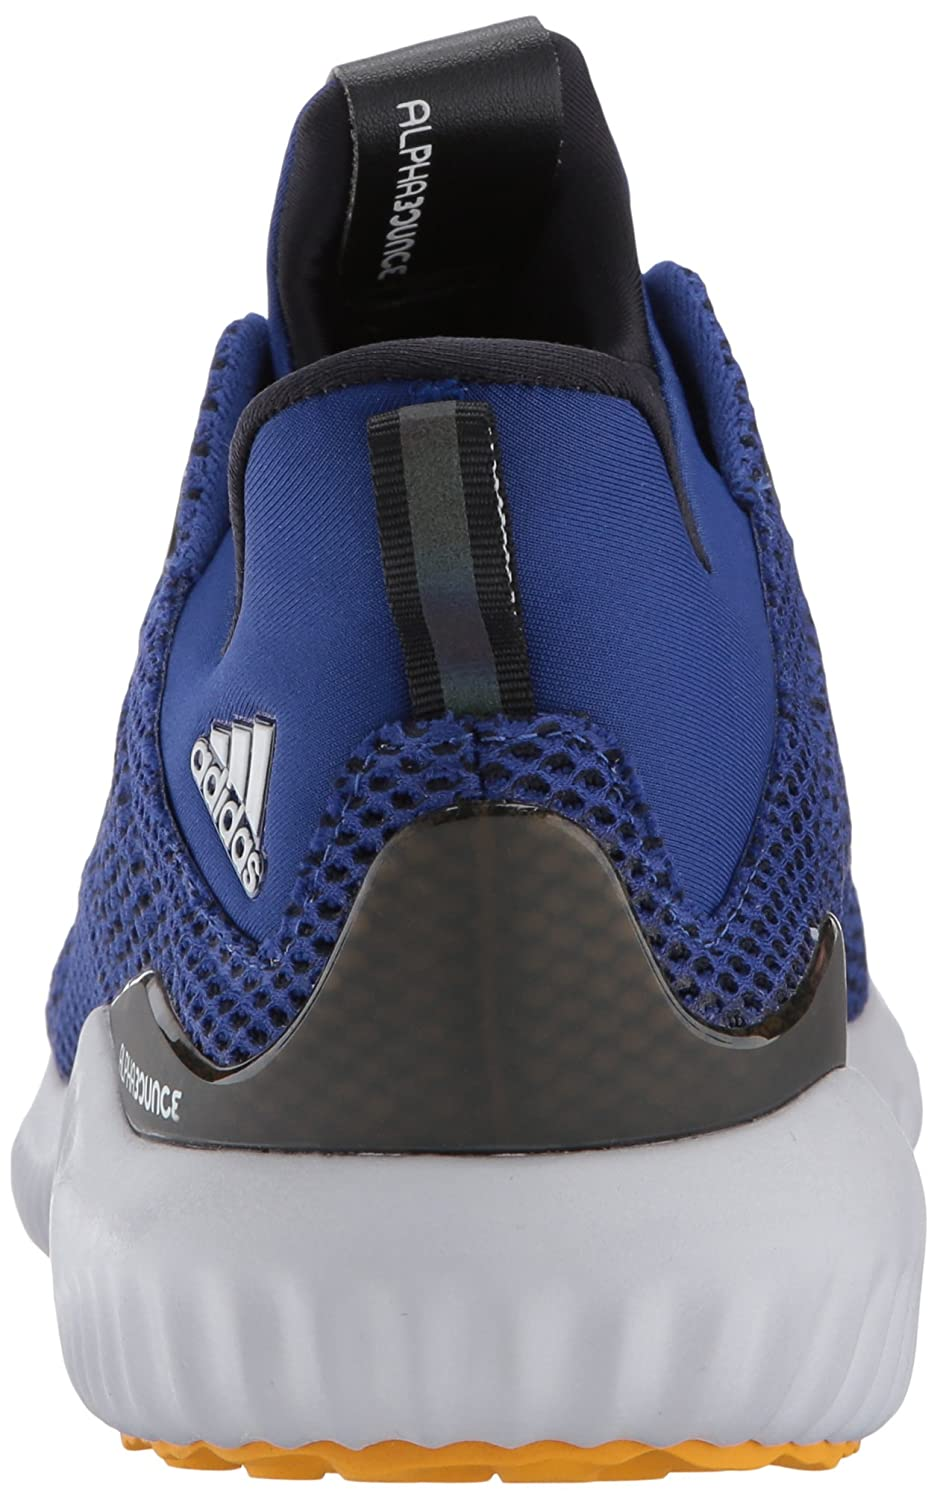 Adidas Mens Rimbalzo Amazon q6C4p0GPaz